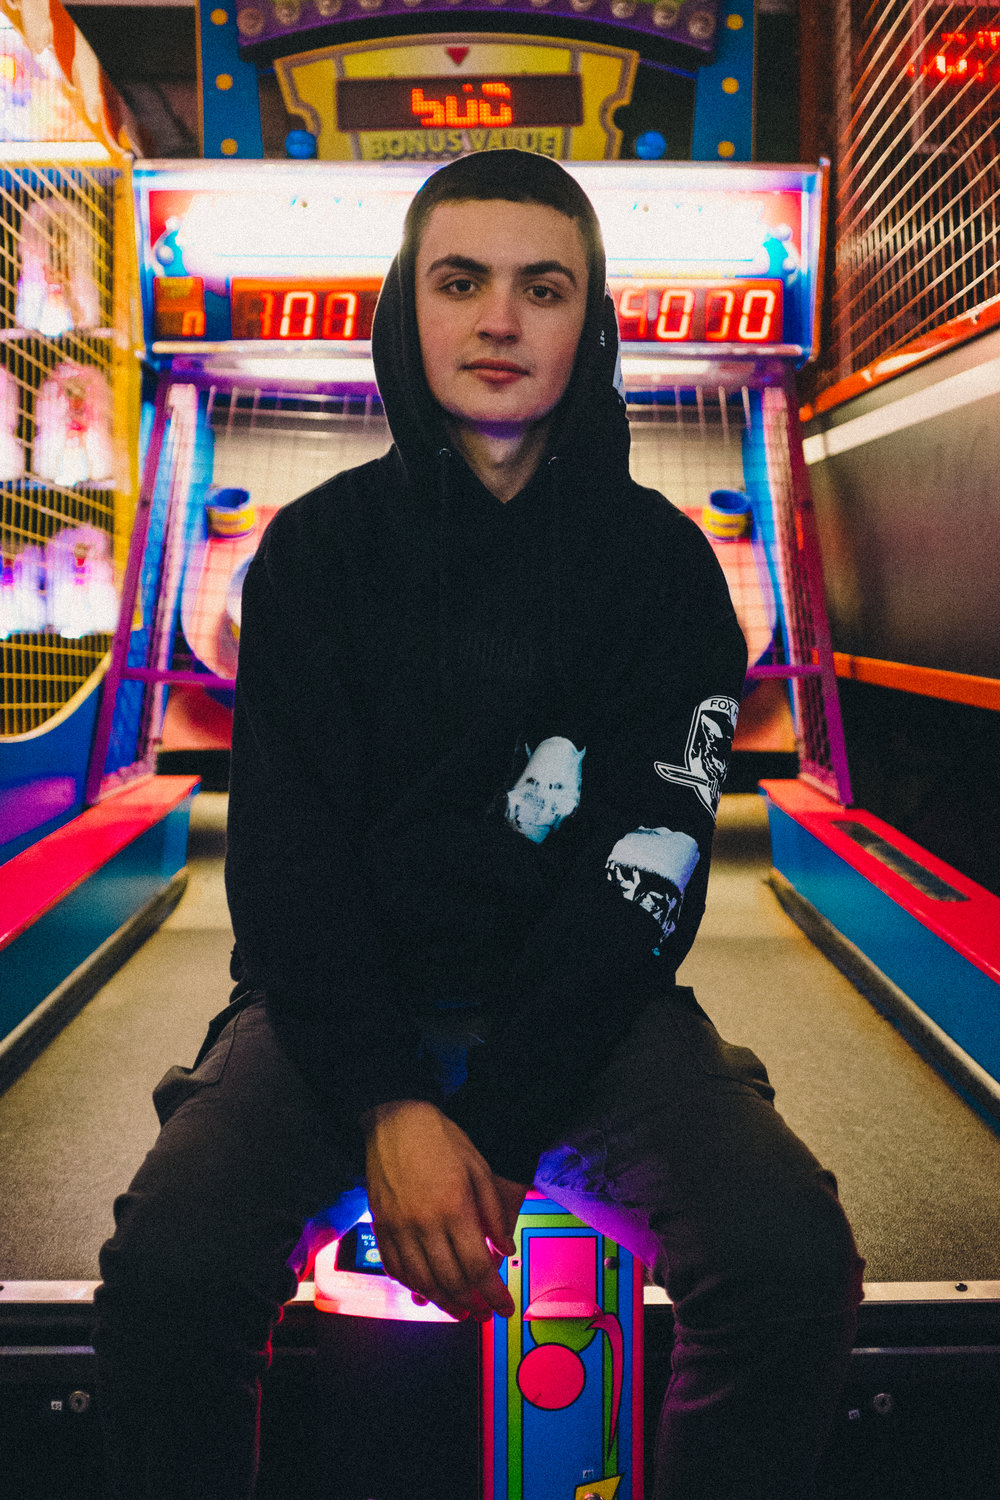 Jay in the Chinatown arcade